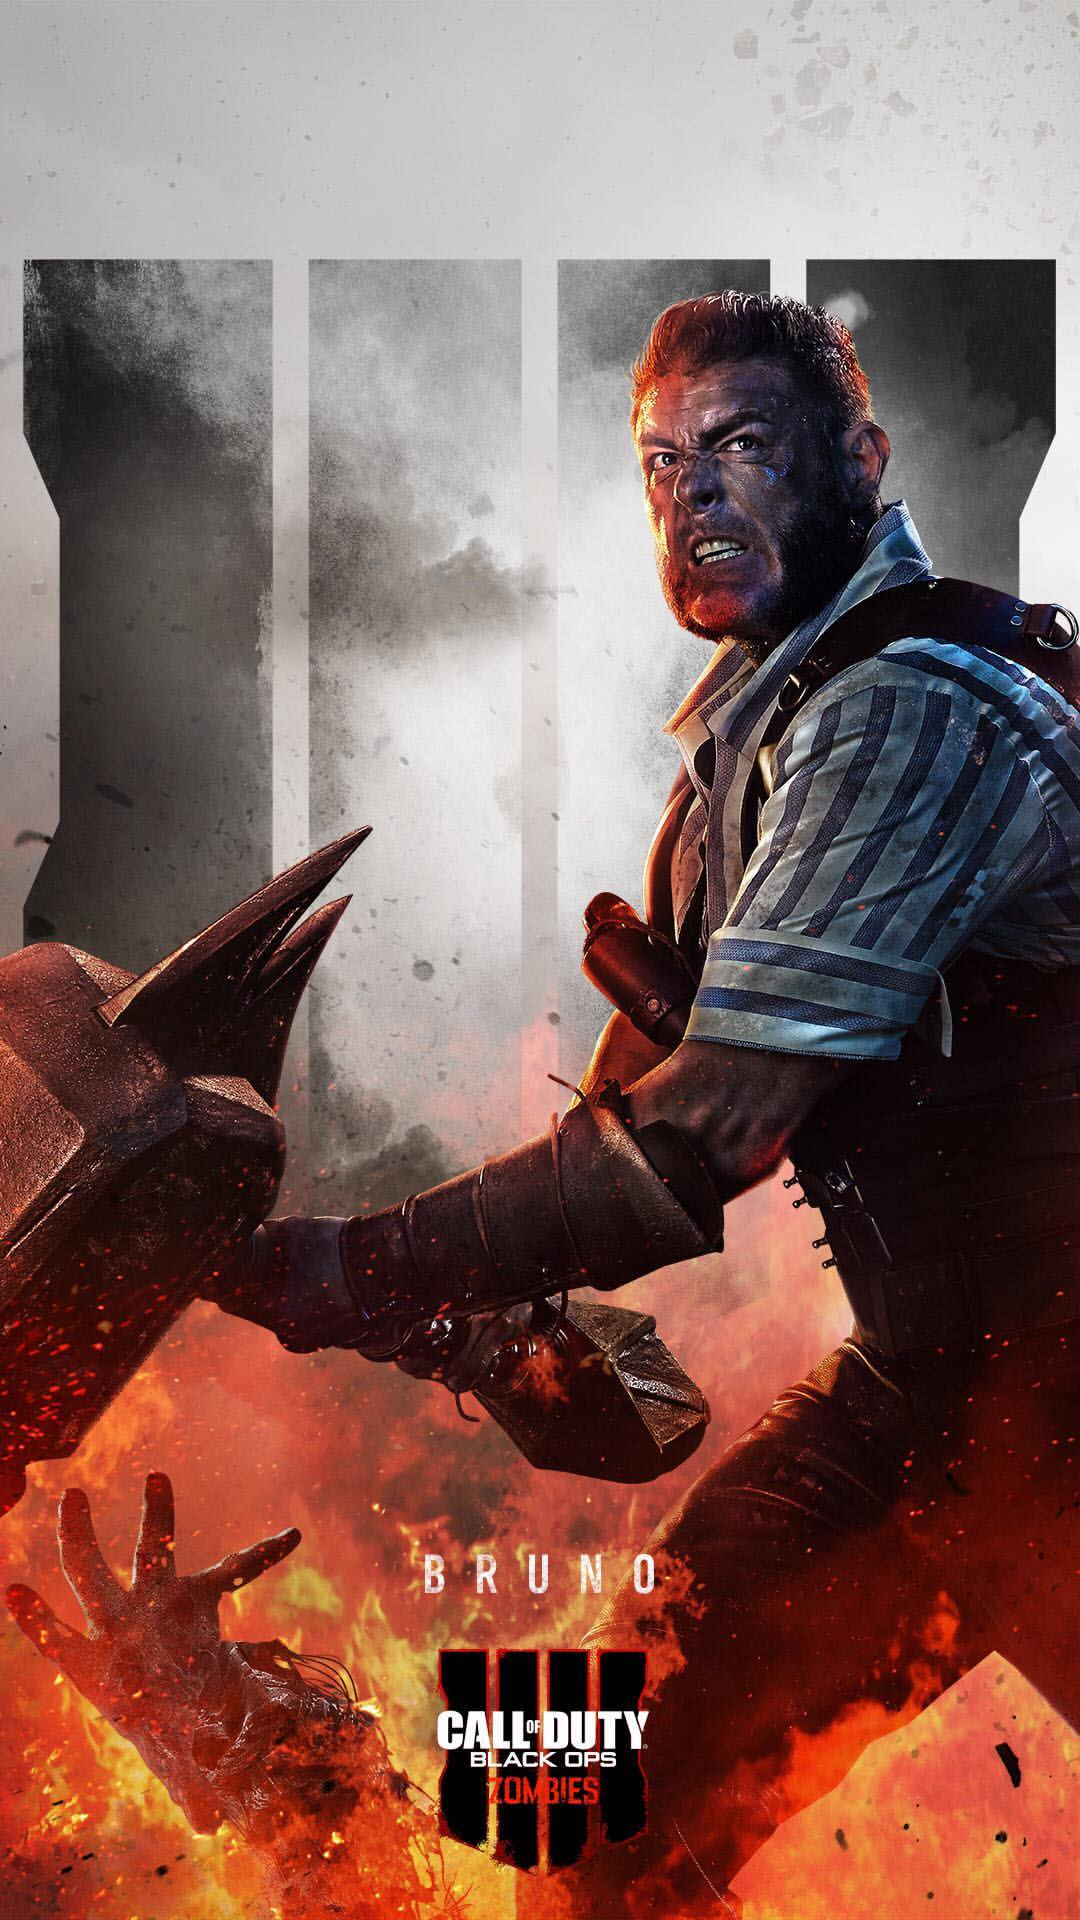 Black Ops 4 Zombie Wallpaper fürs Handy